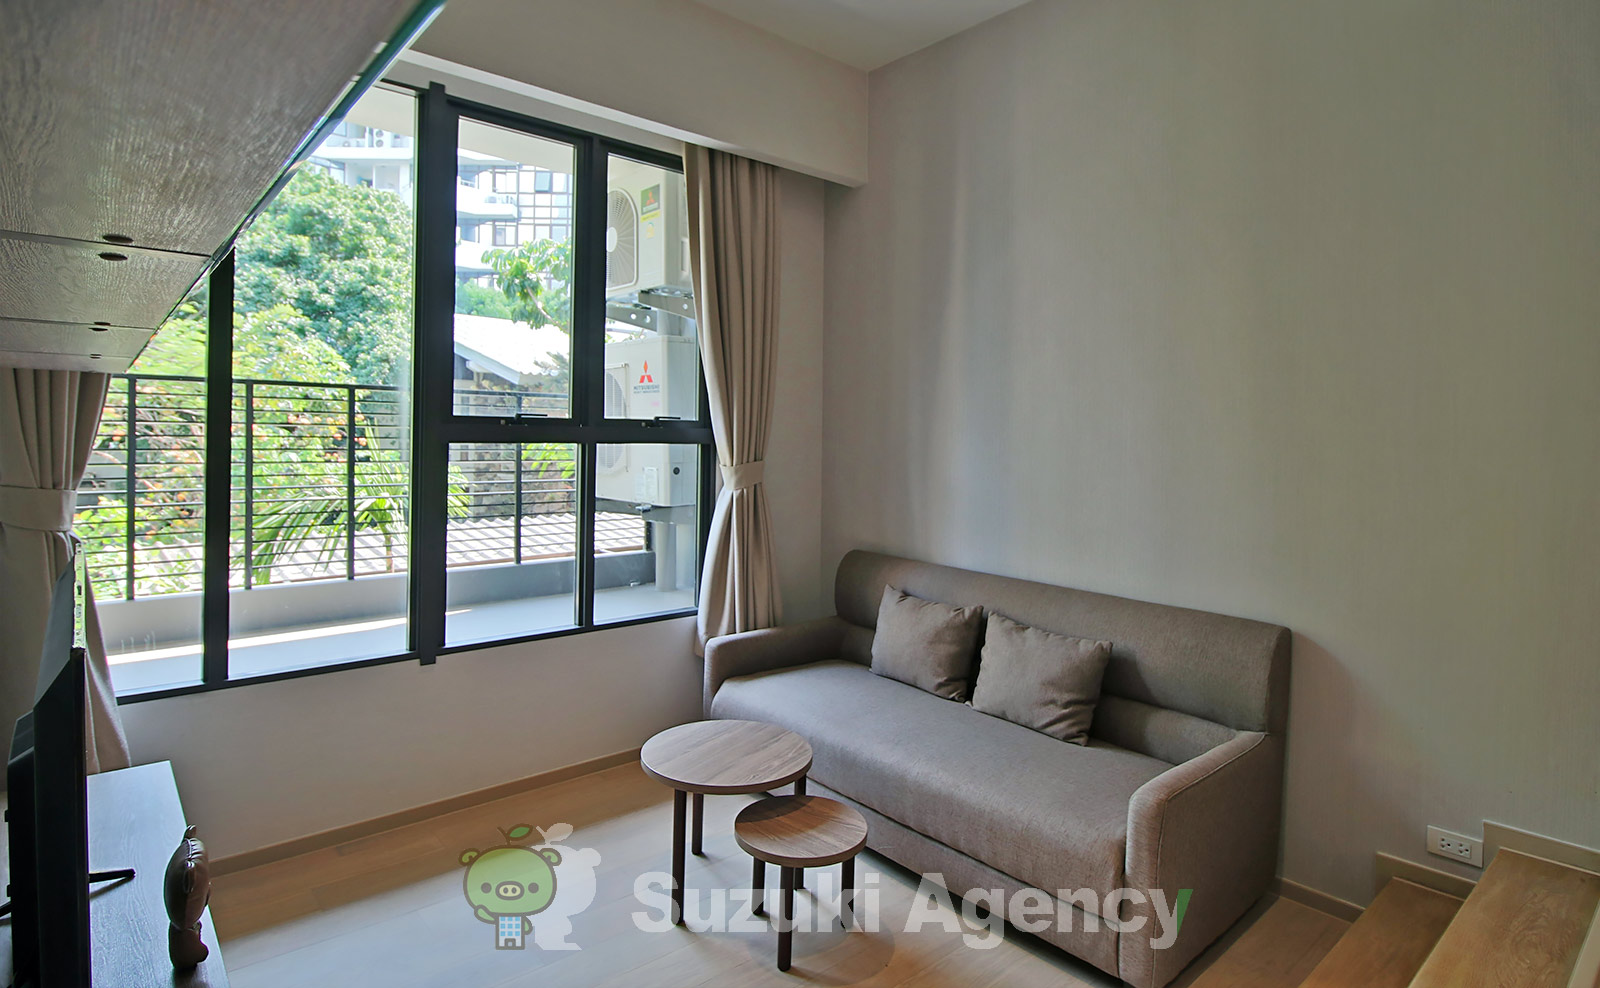 Runesu Thonglor 5:2Bed Room Photos No.3